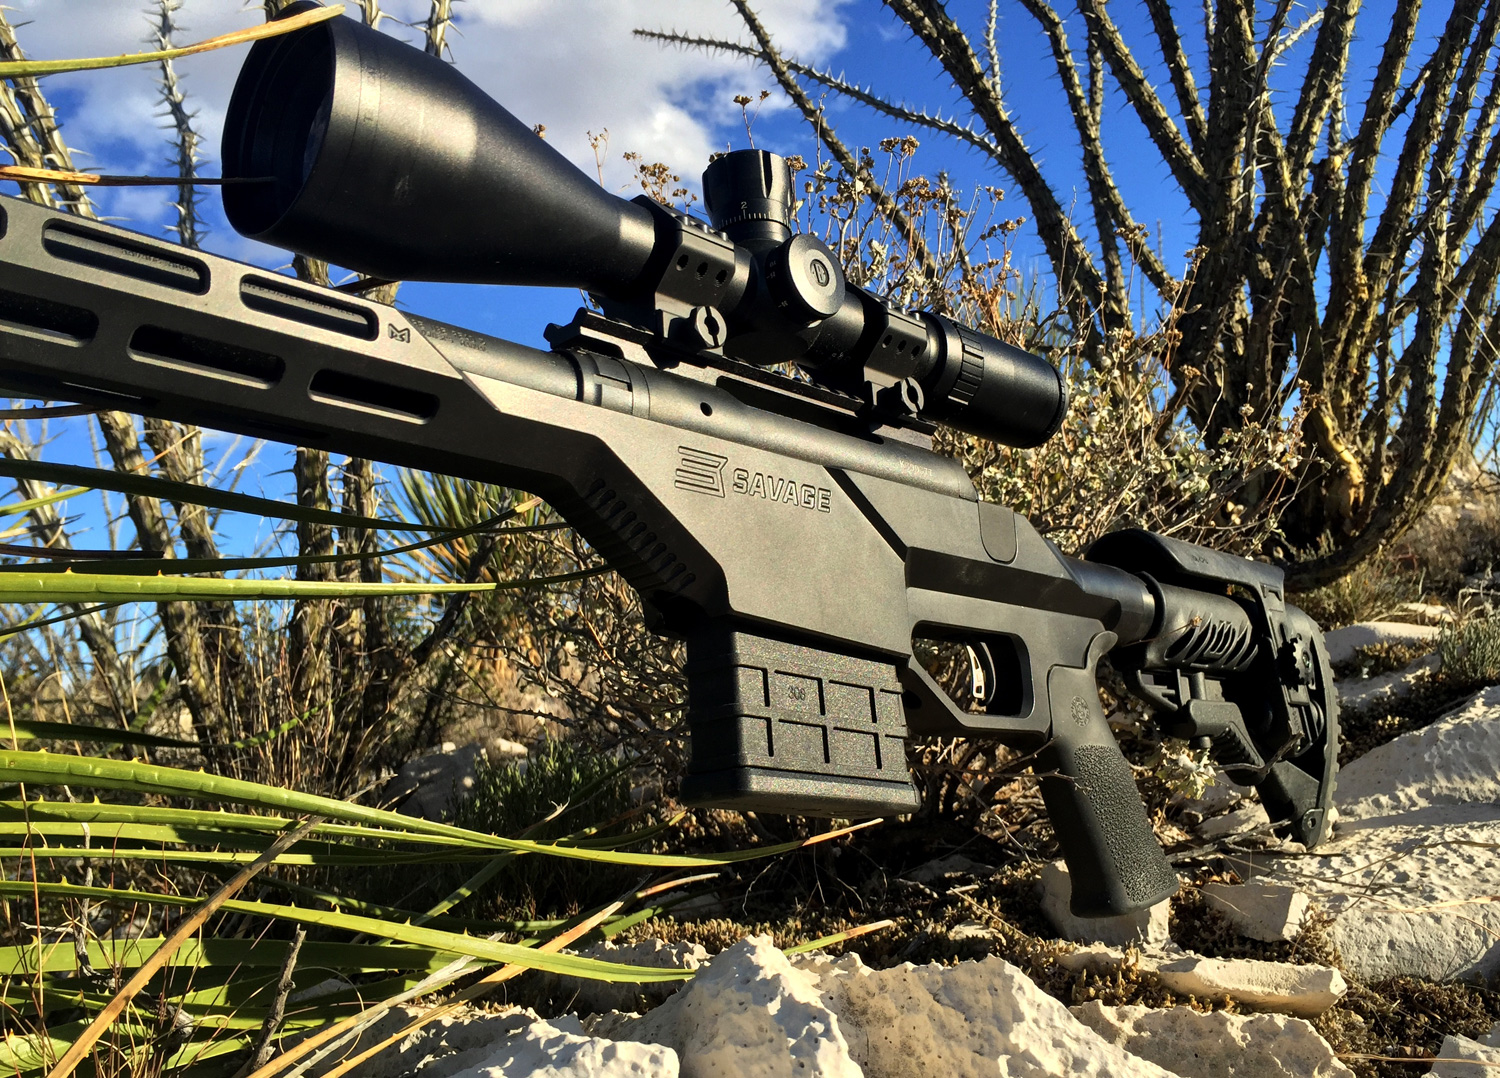 Savage 100 BA Stealth with Bushnell Elite Tactical LRS 6-24x 50mm Riflescope and Weaver scope rings